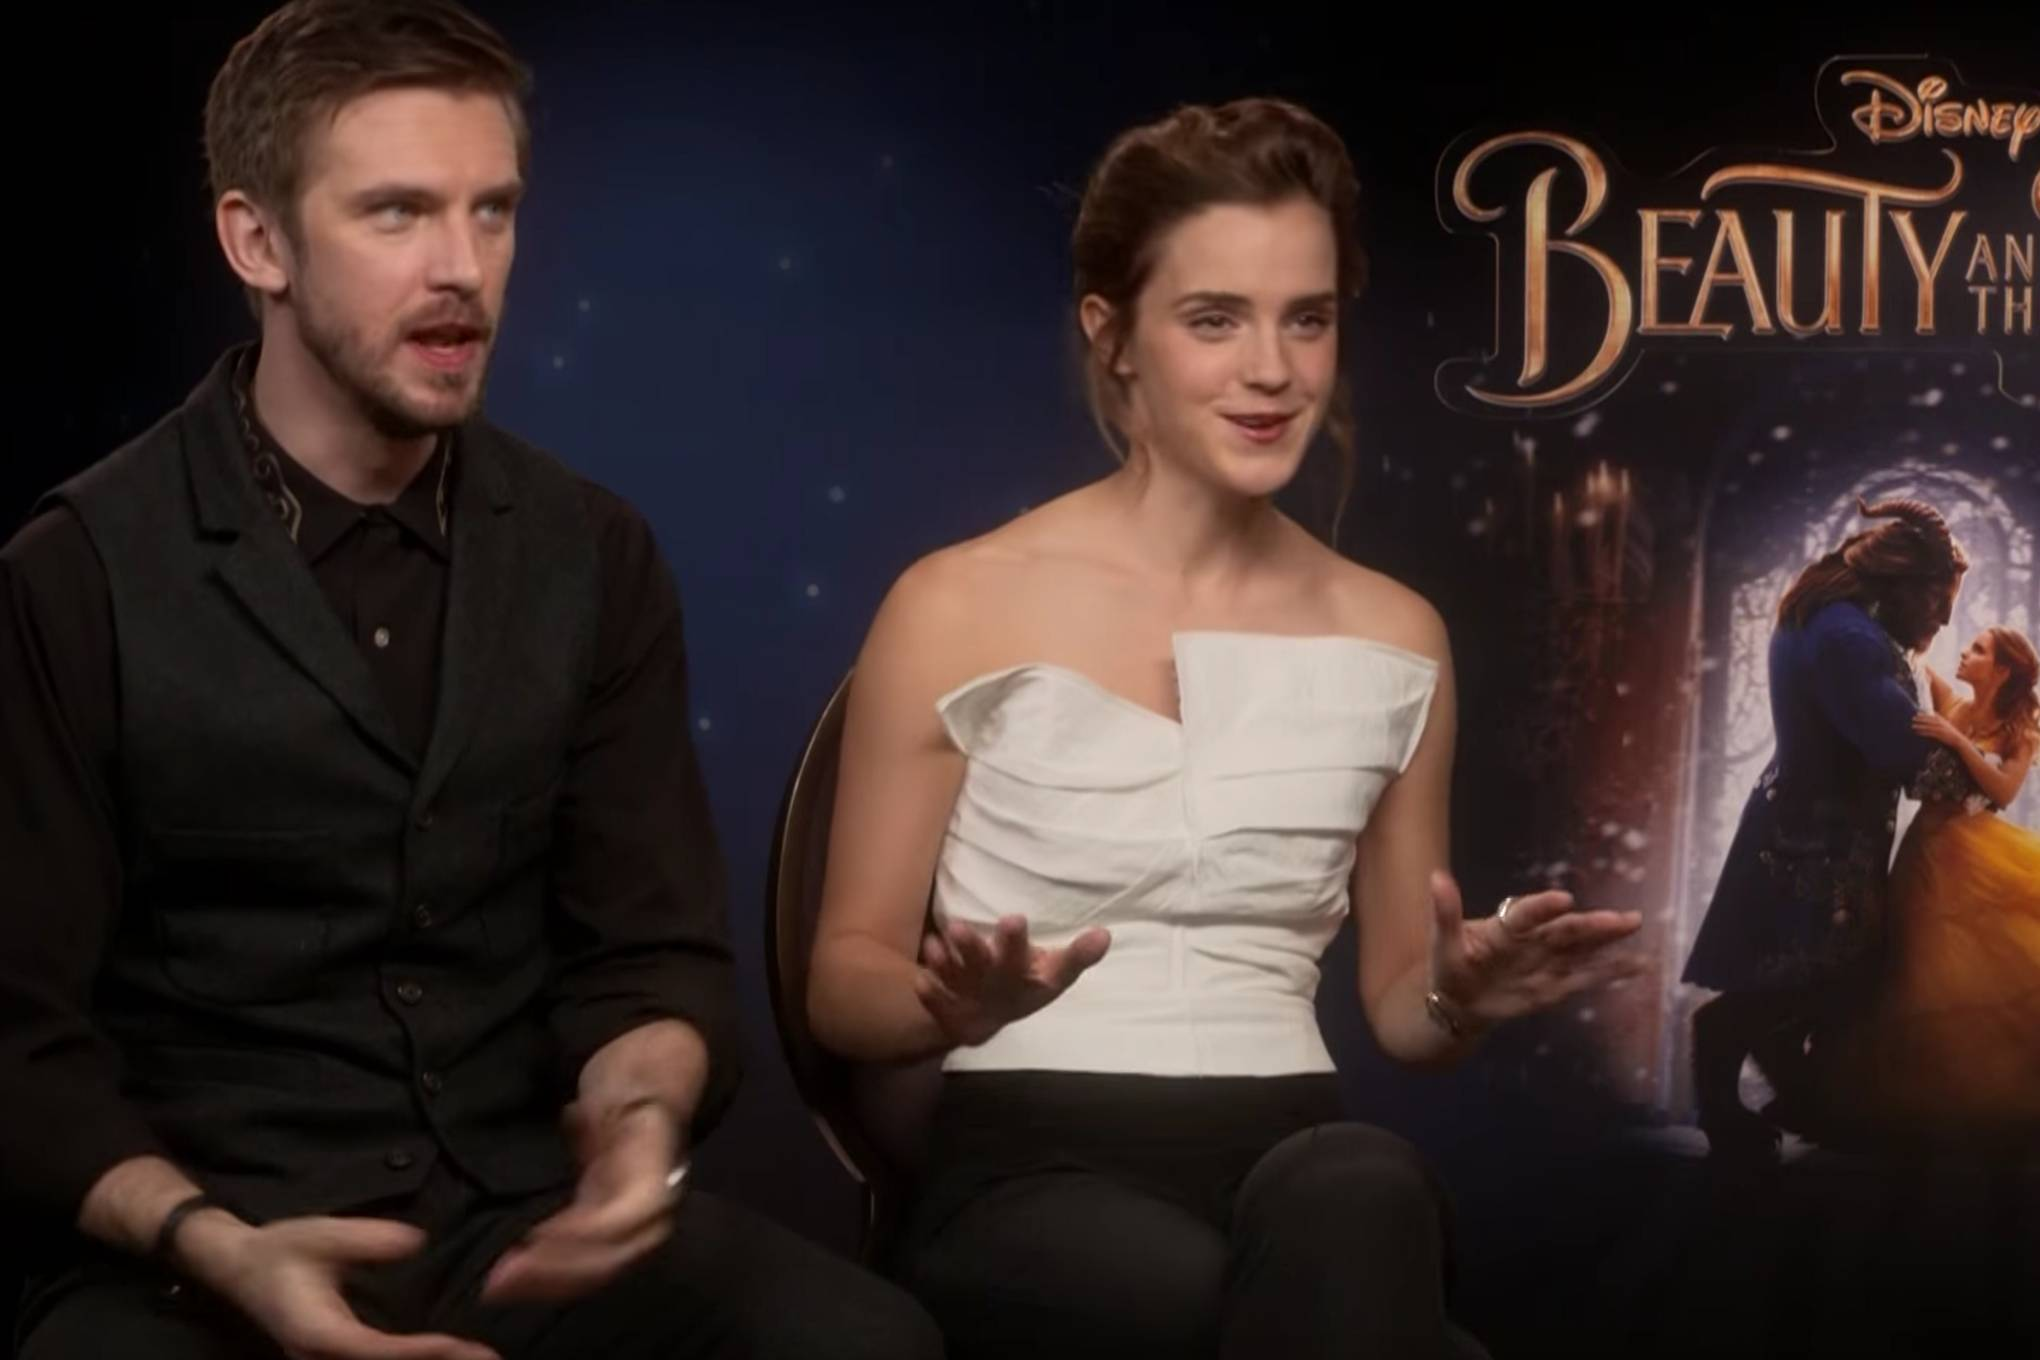 Emma Watson & Dan Stevens Talk Beauty And The Beast Wrap Party Dance Moves